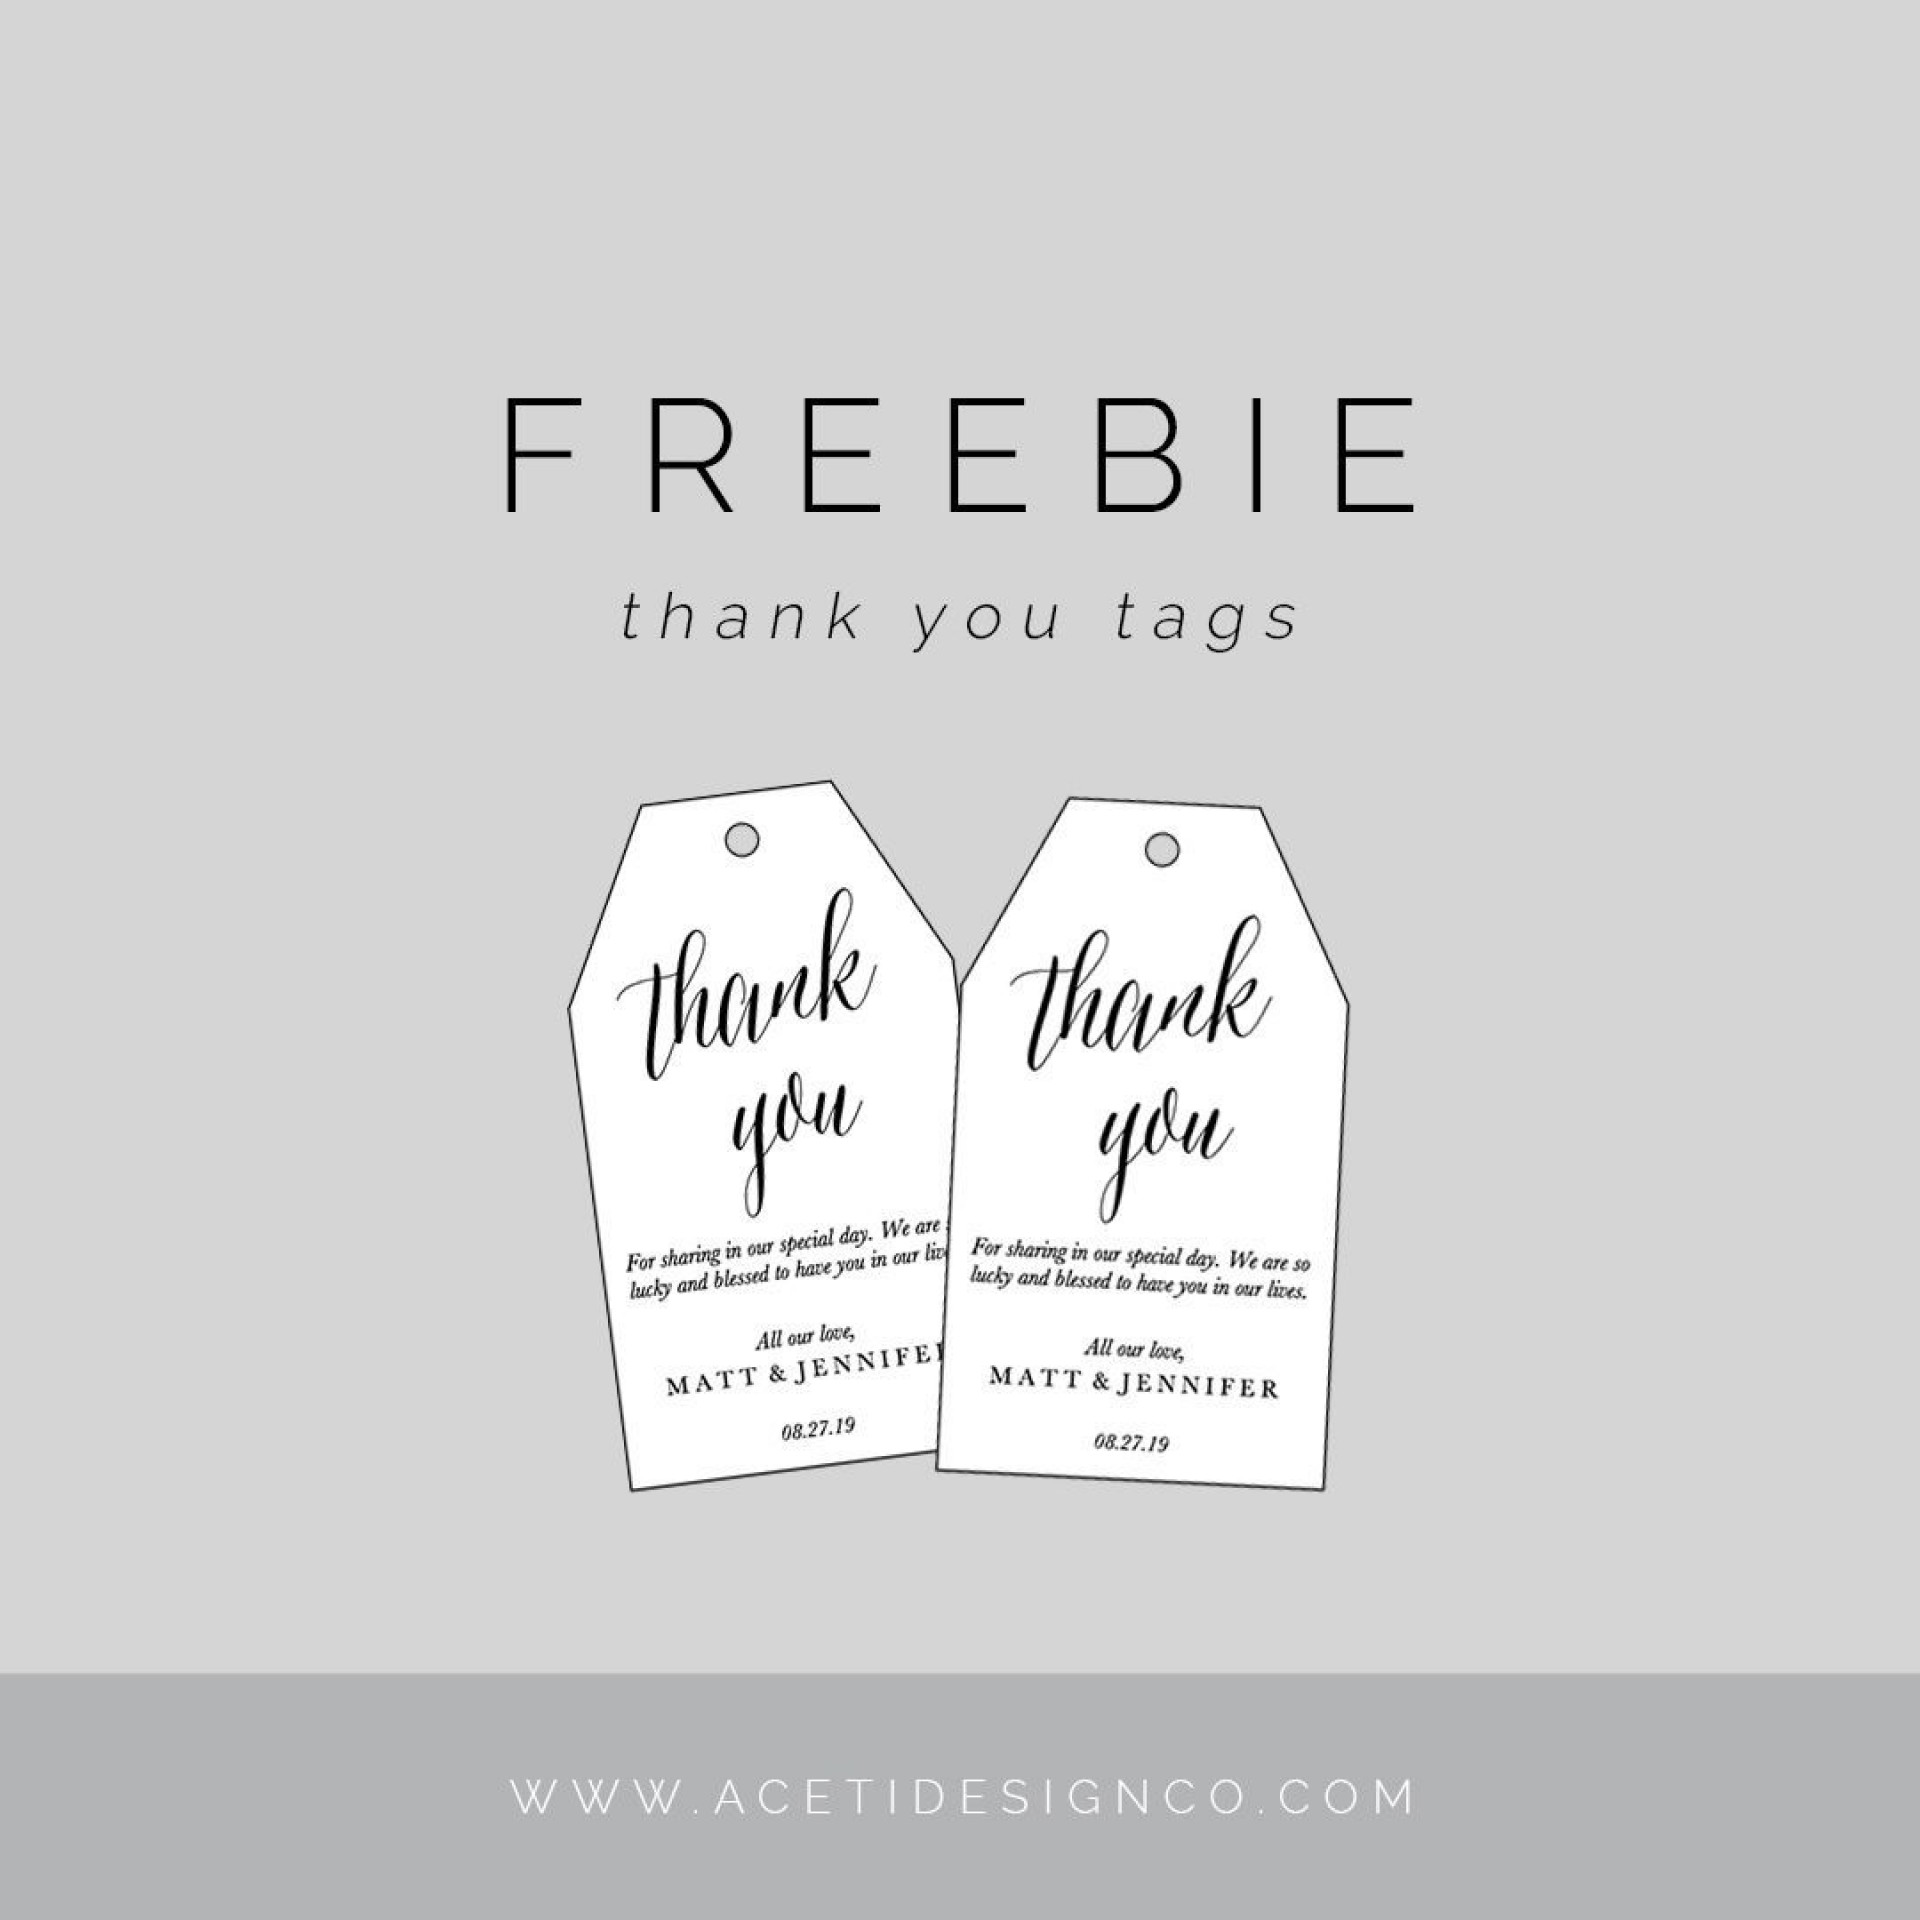 000 Breathtaking Free Printable Thank You Gift Tag Template Concept  Templates1920